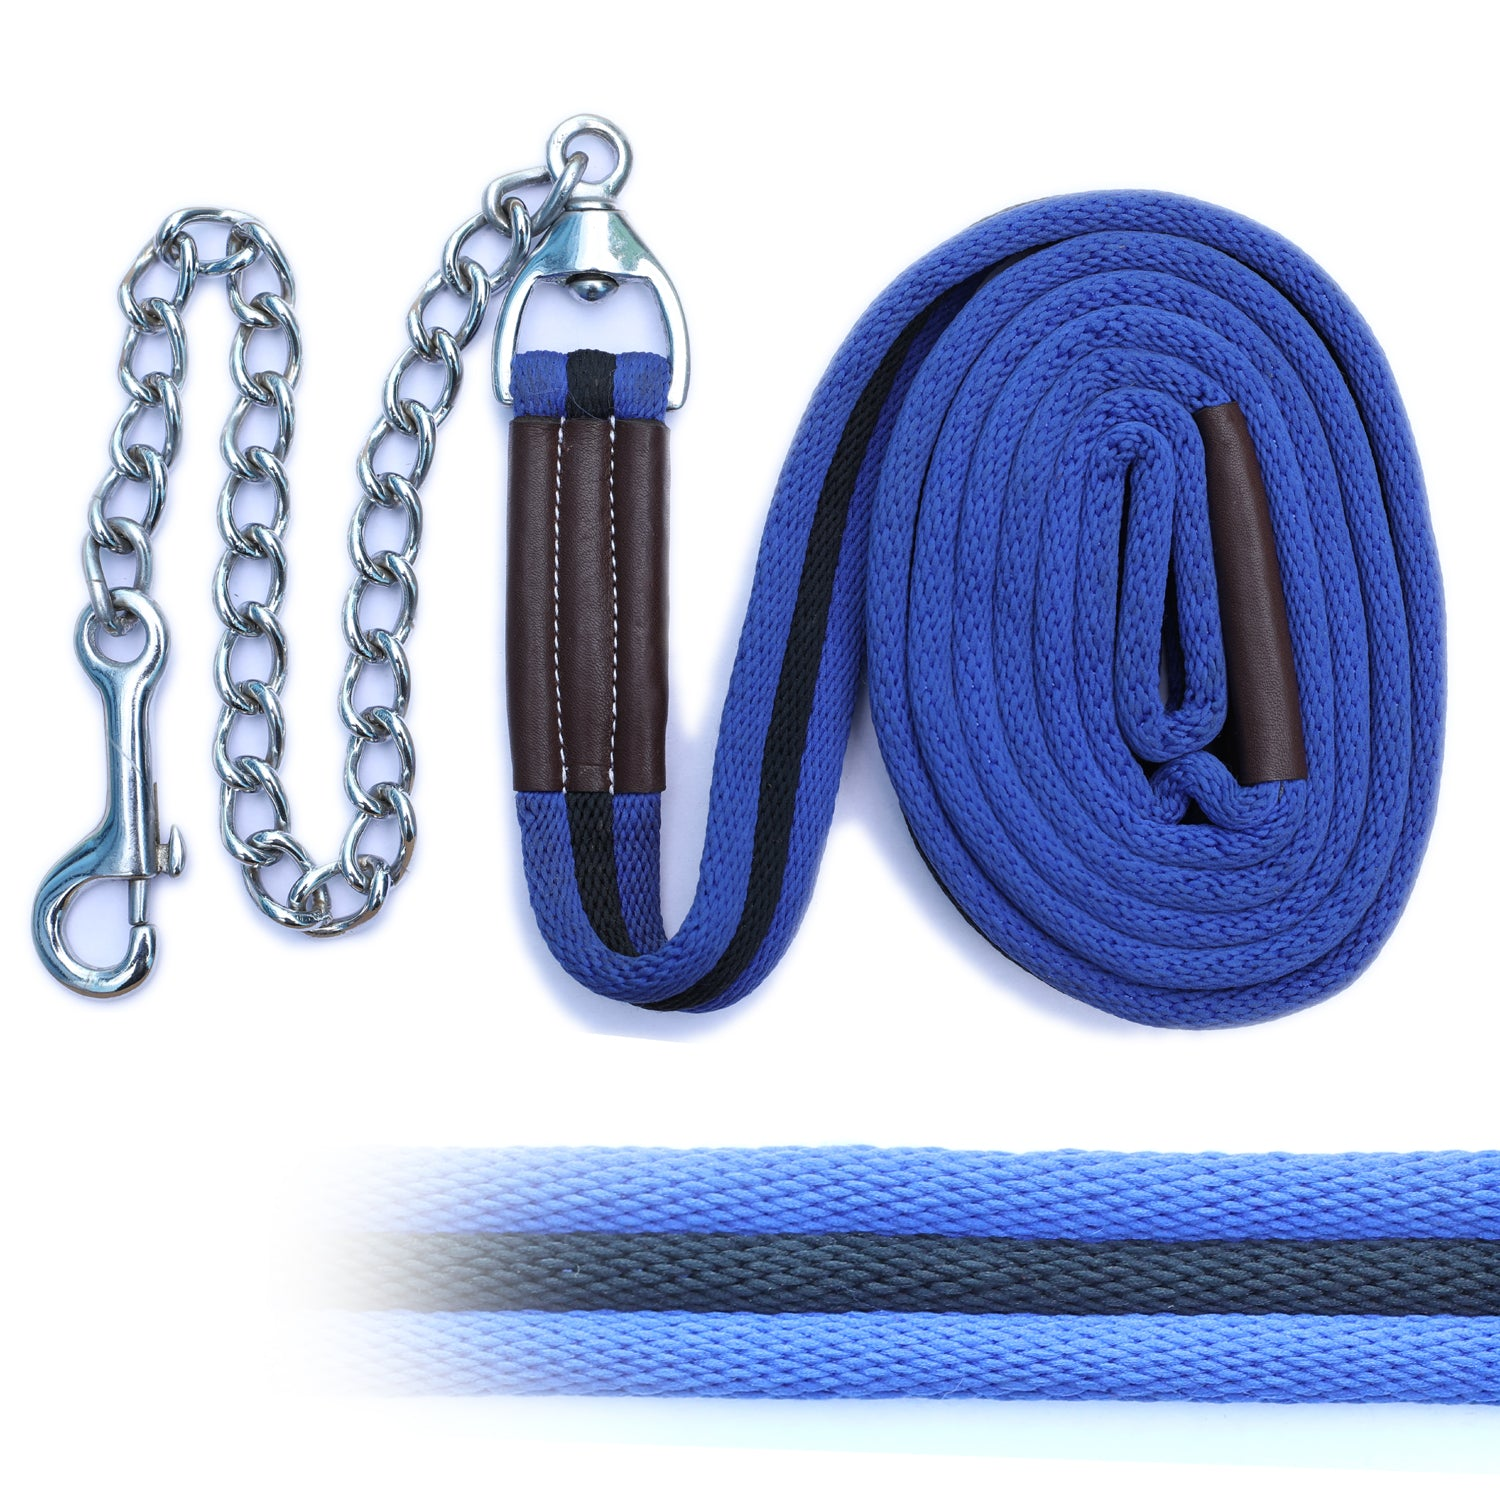 ExionPro Majestic Light Blue Web Cushion Leads With Black Strip Along With Solid Brass Chain-Bridles & Reins